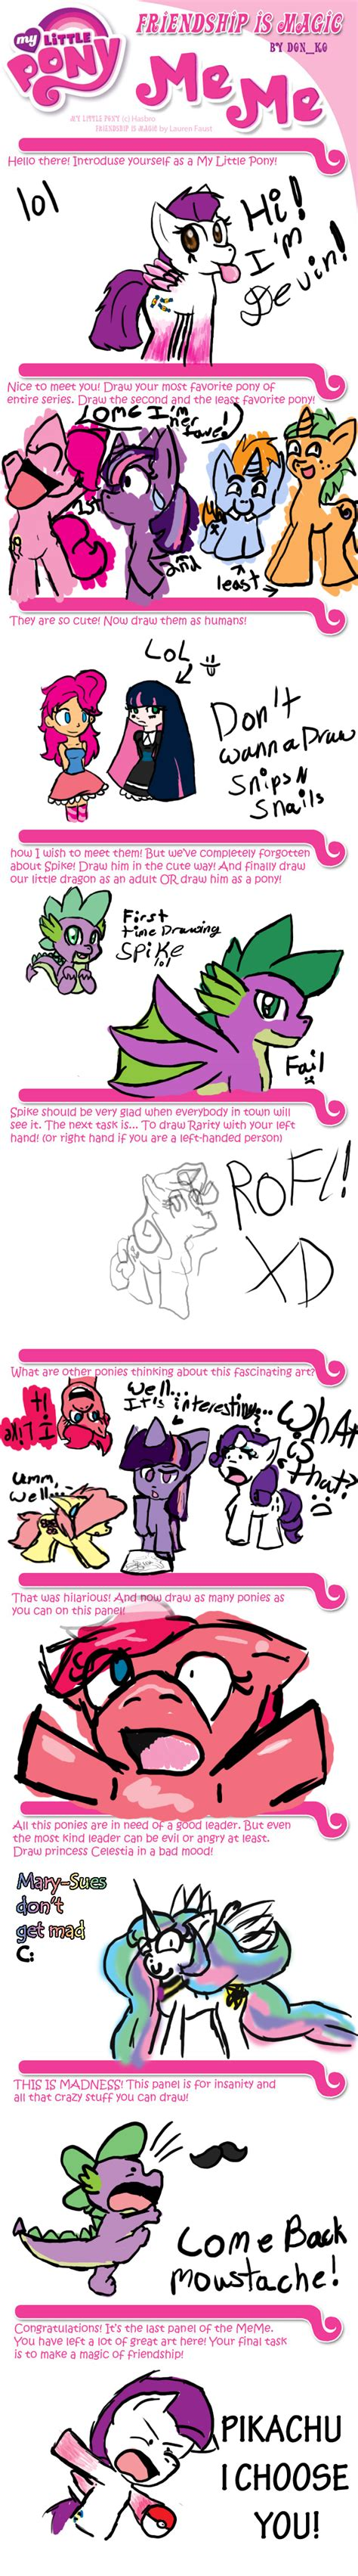 Mlp Fim Meme - mlp fim meme by lolly pop girl732 on deviantart